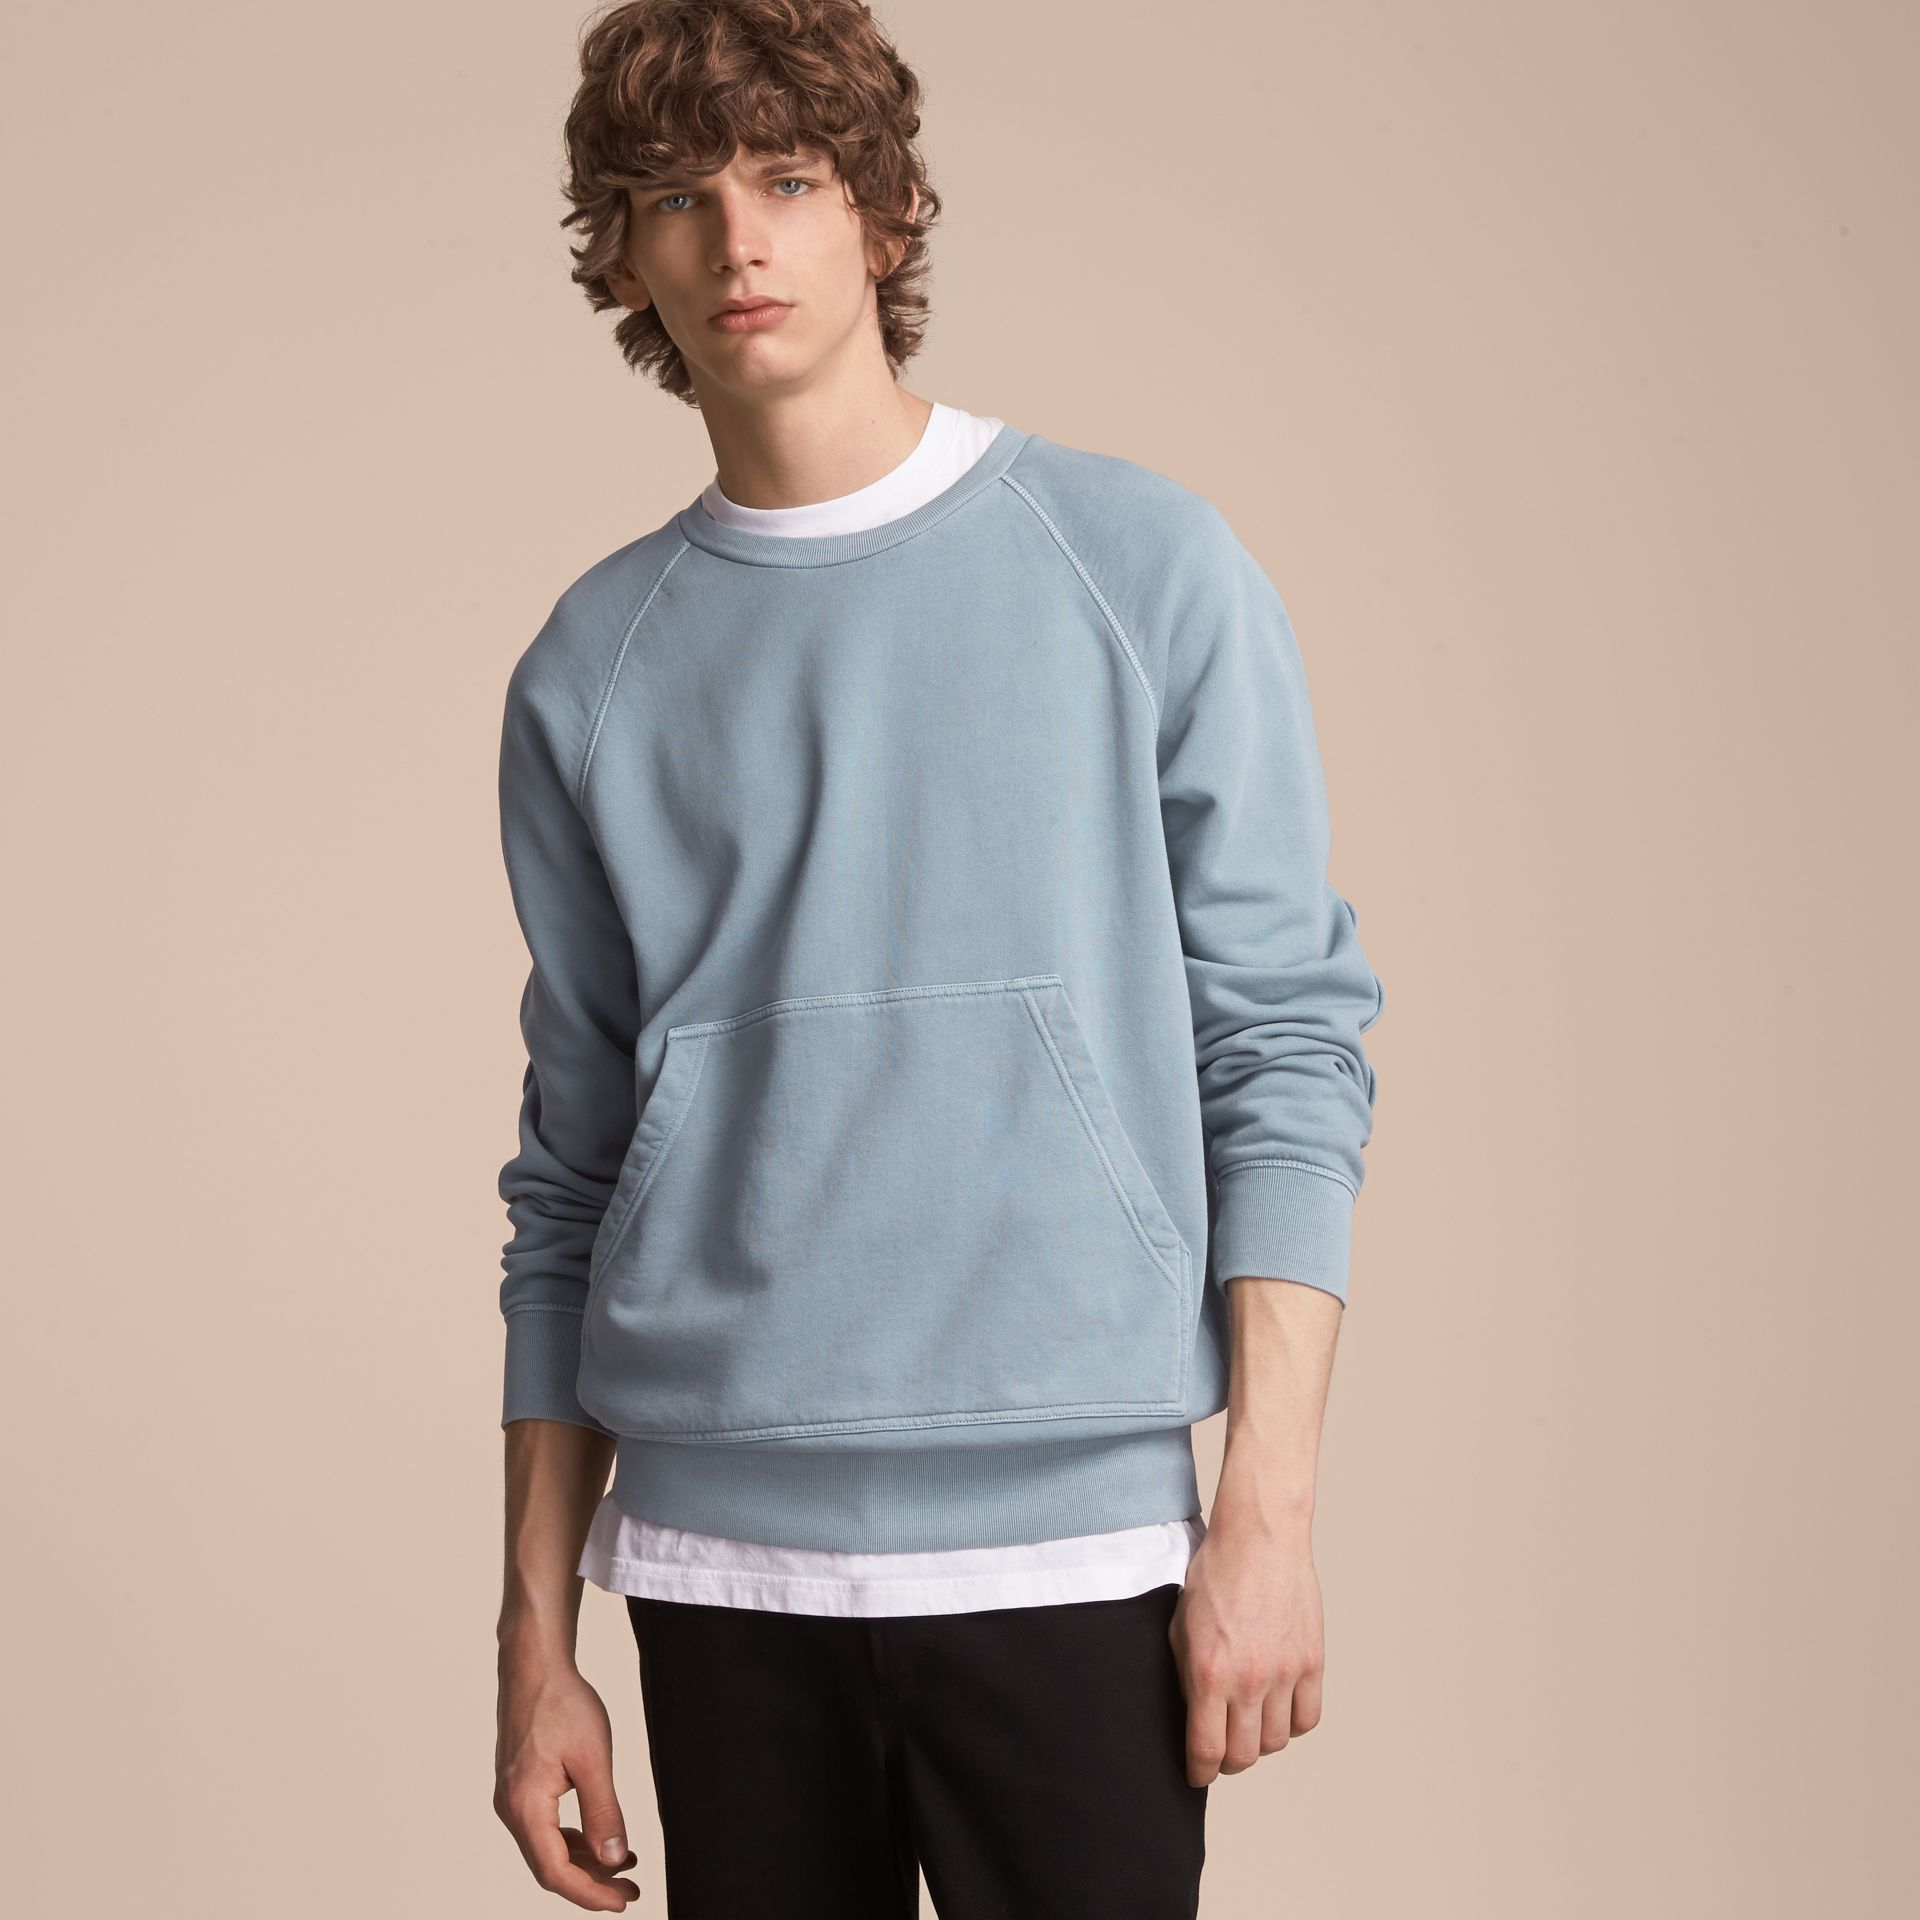 Unisex Pigment-dyed Cotton Oversize Sweatshirt in Dusty Blue - Men | Burberry - gallery image 6